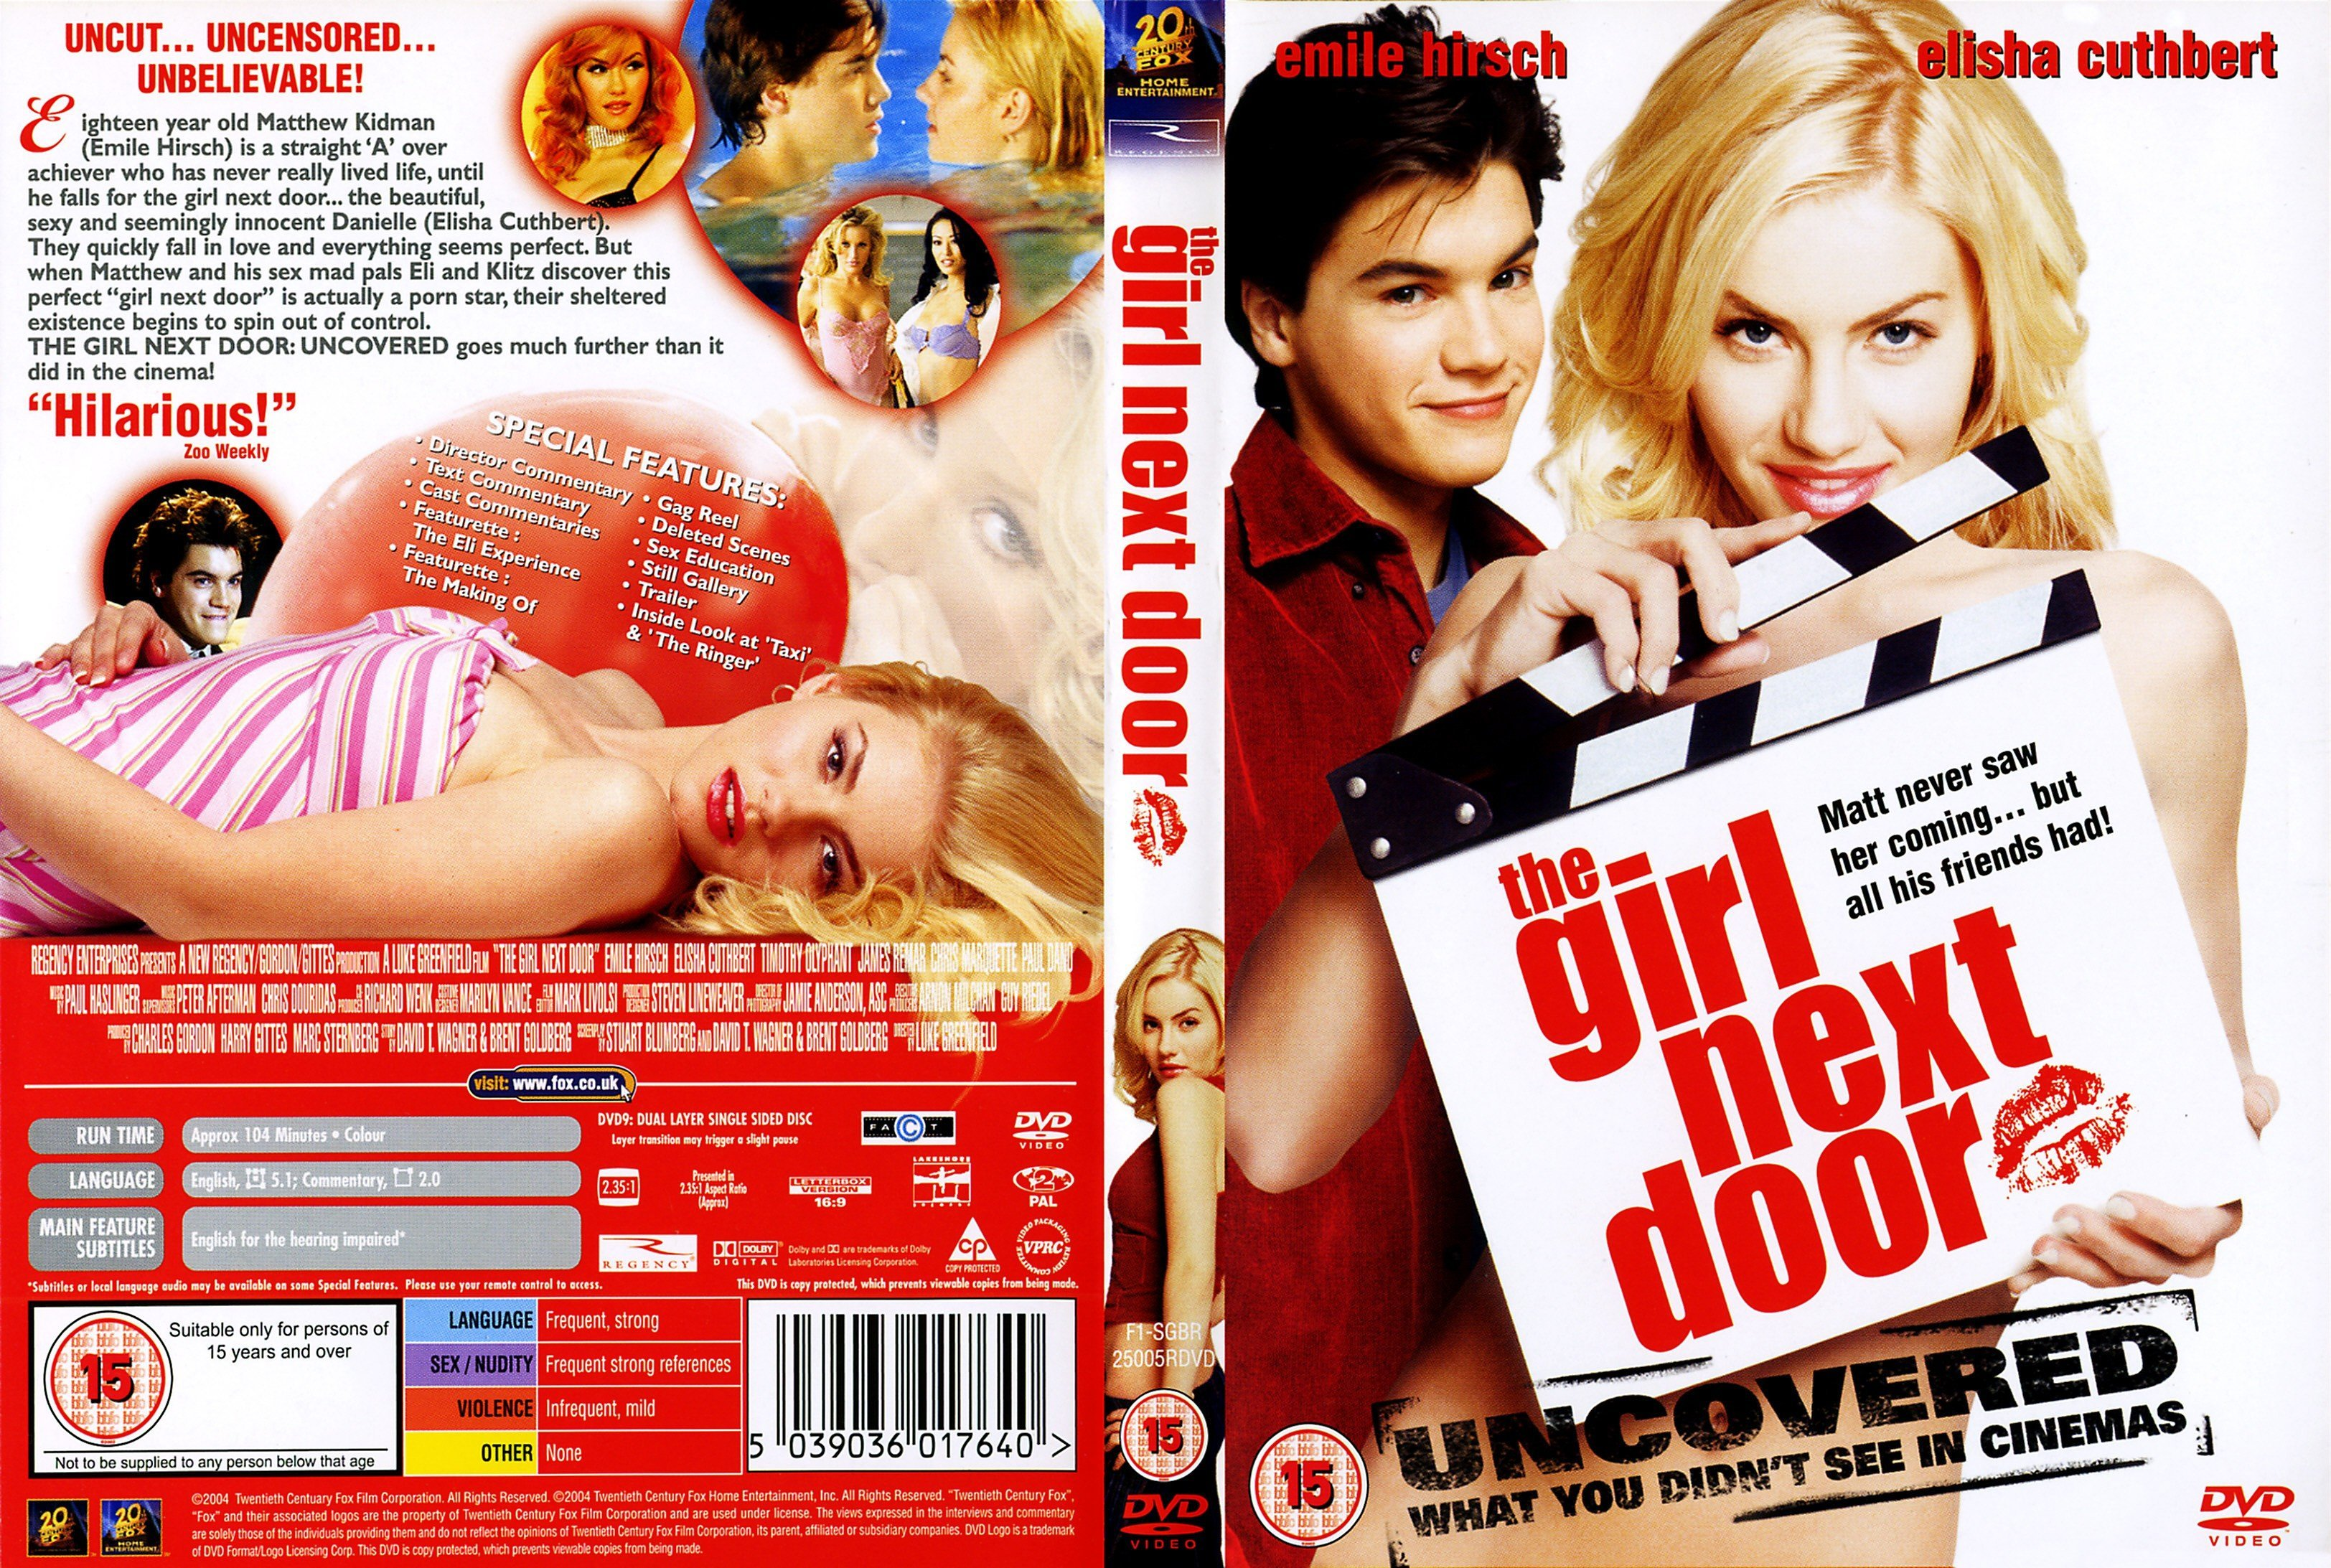 The girl next door movie video